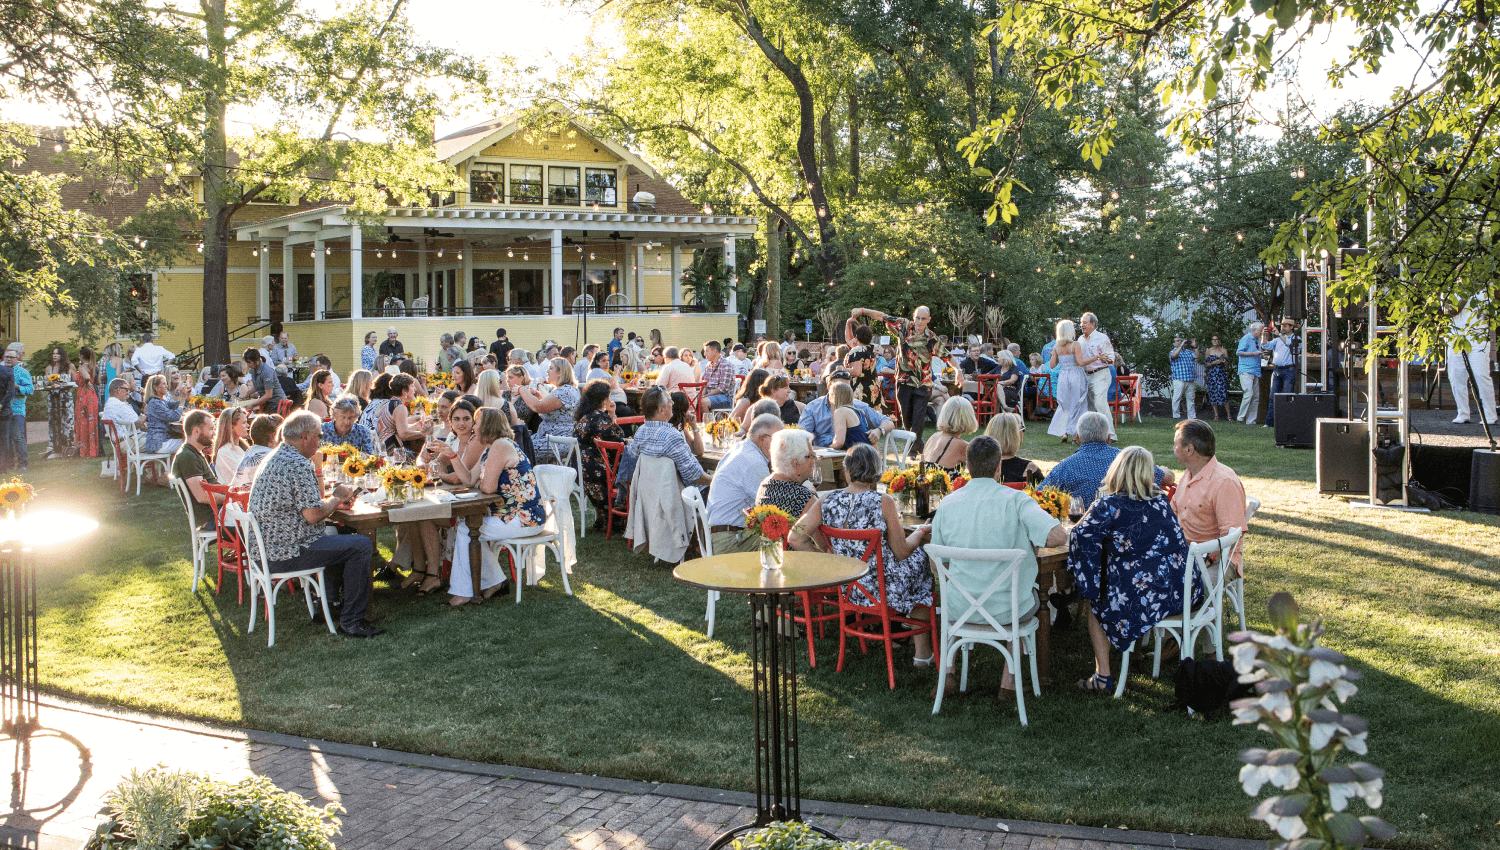 An early evening dinner with dancing and a band in the Member's Lawn